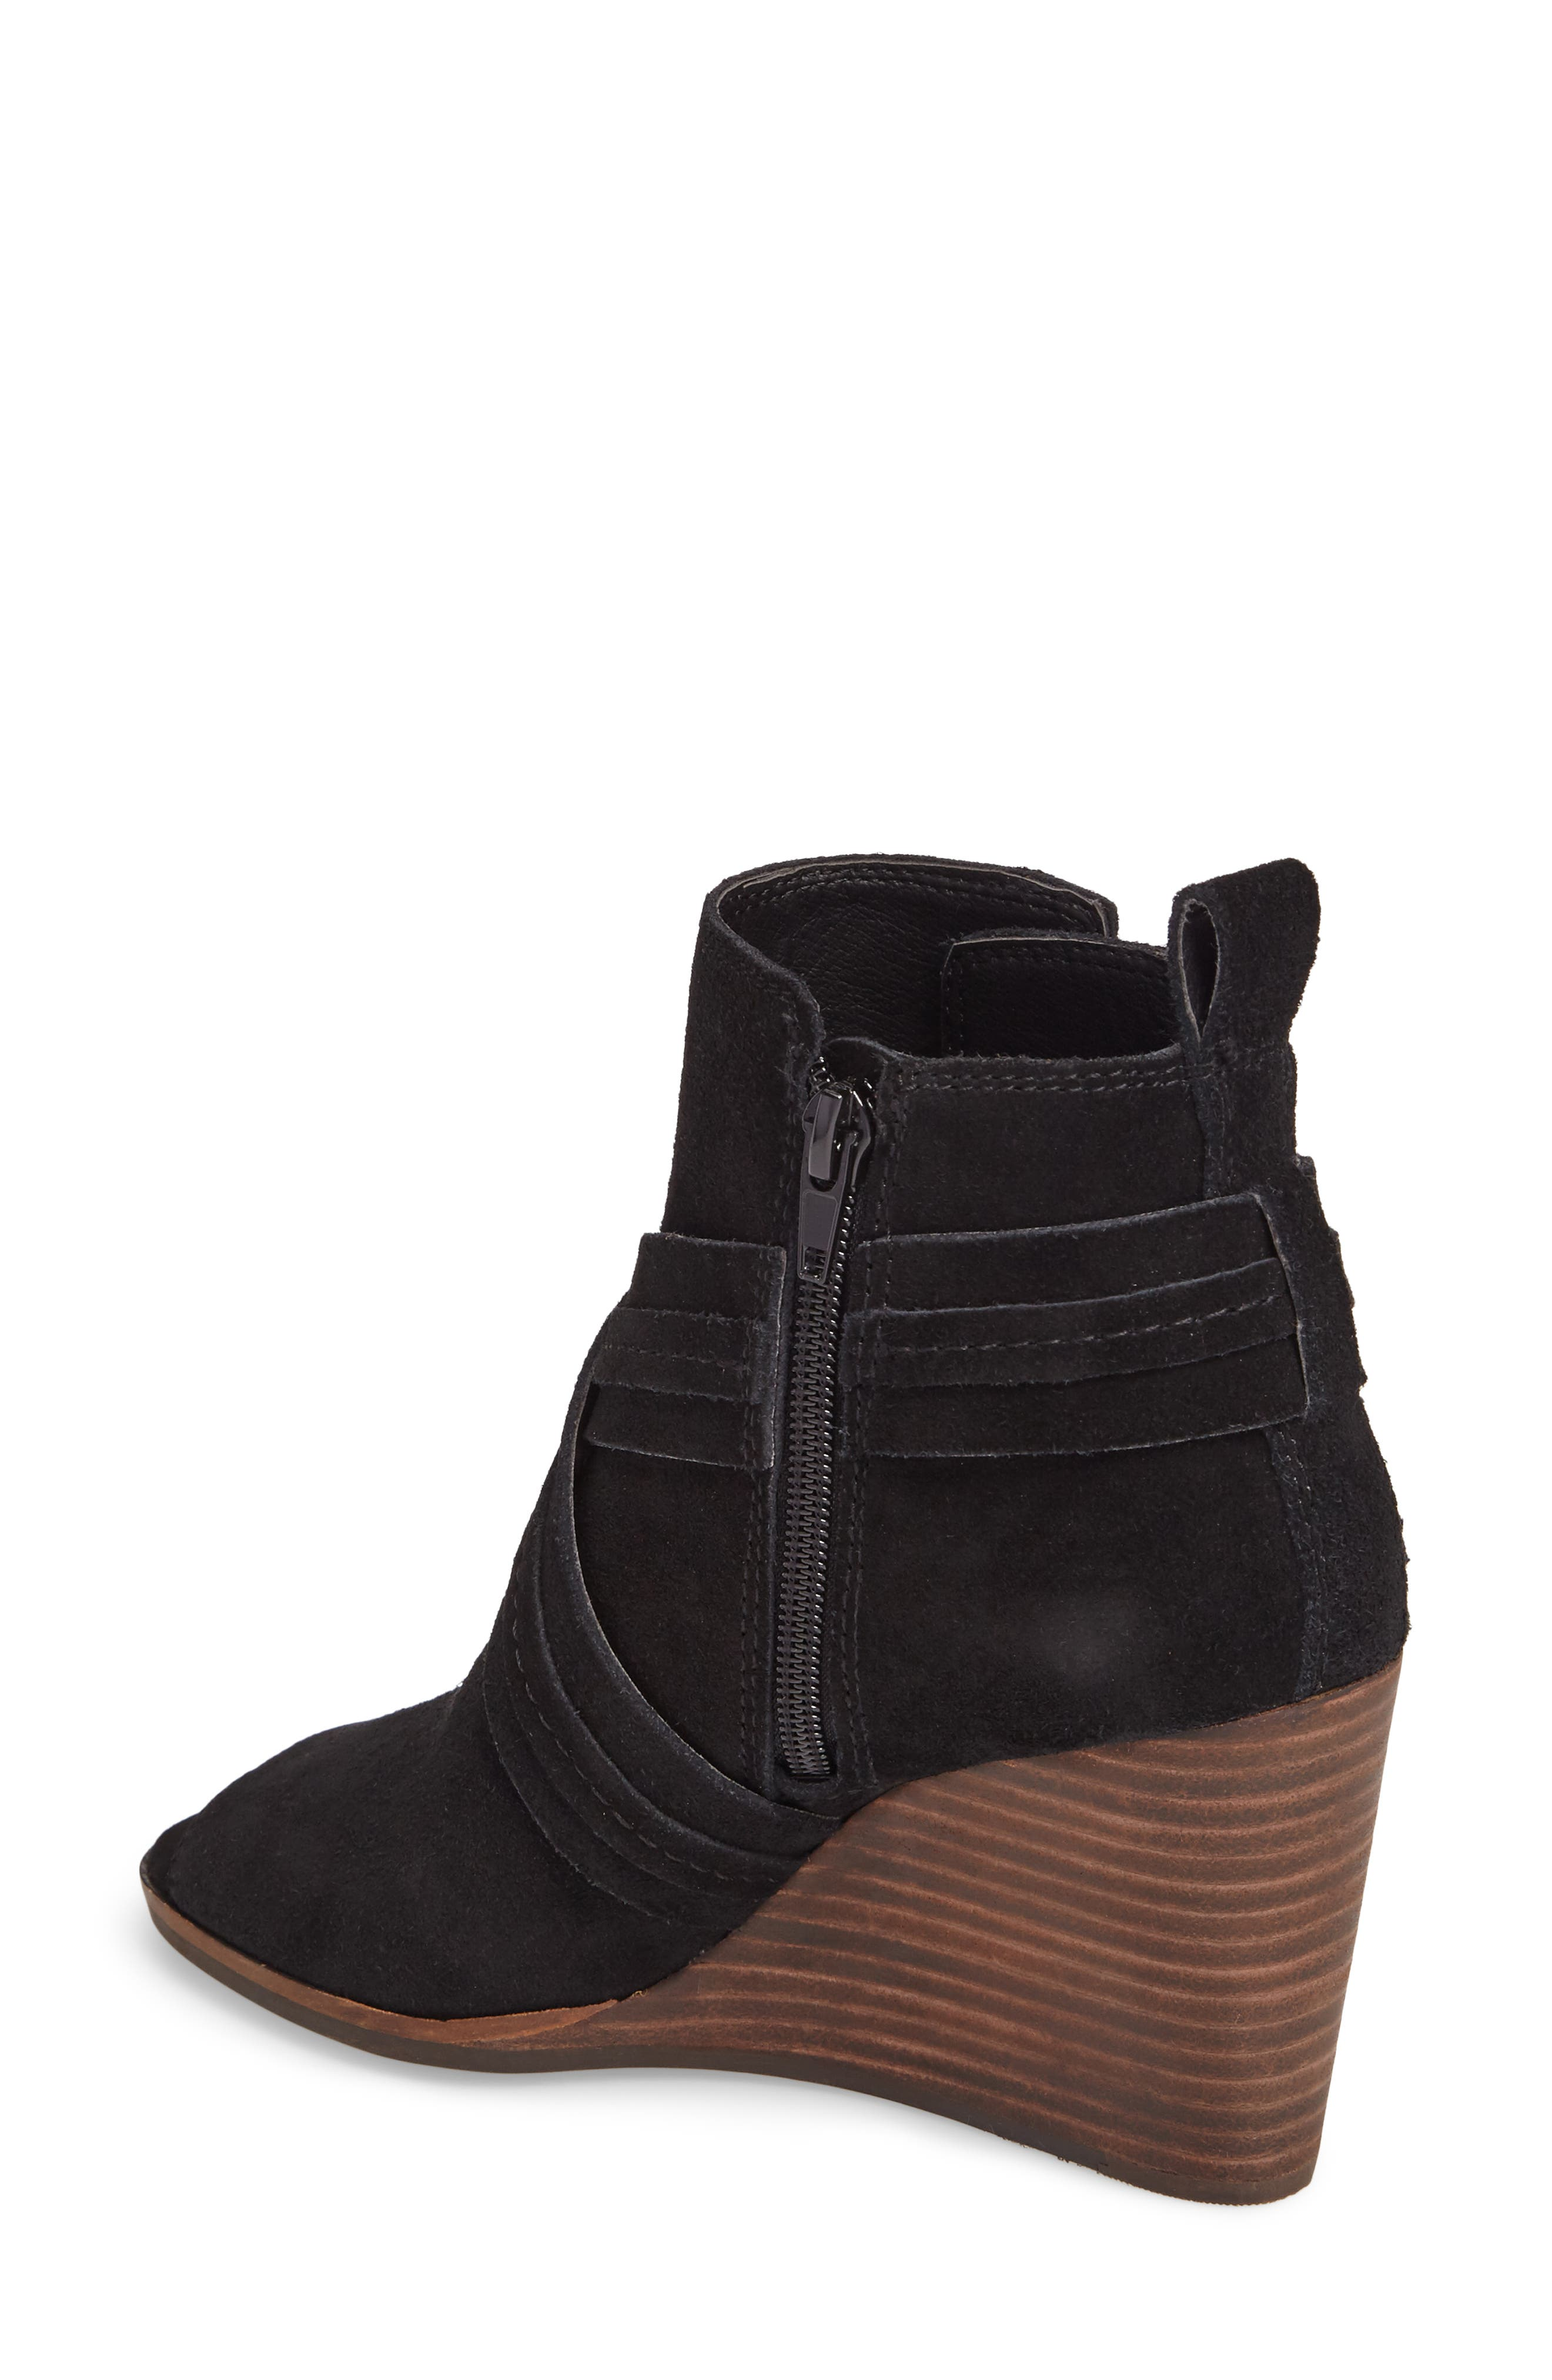 Udom Wedge Bootie,                             Alternate thumbnail 2, color,                             001